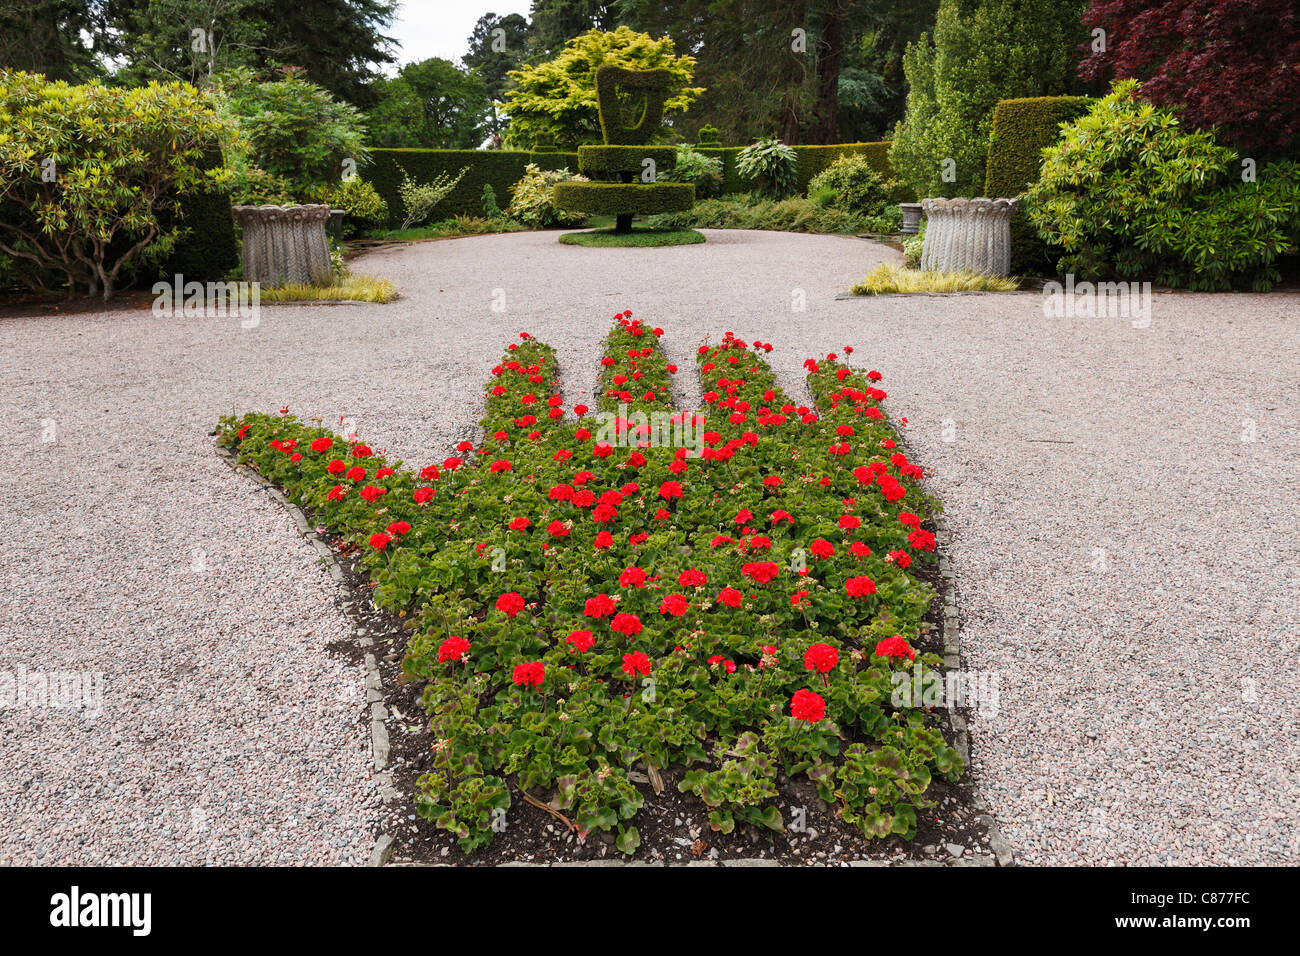 Northern Ireland, County Down, Newtownards, View of red Ulster hand made up of flowerbed at Mount Stewart gardens - Stock Image